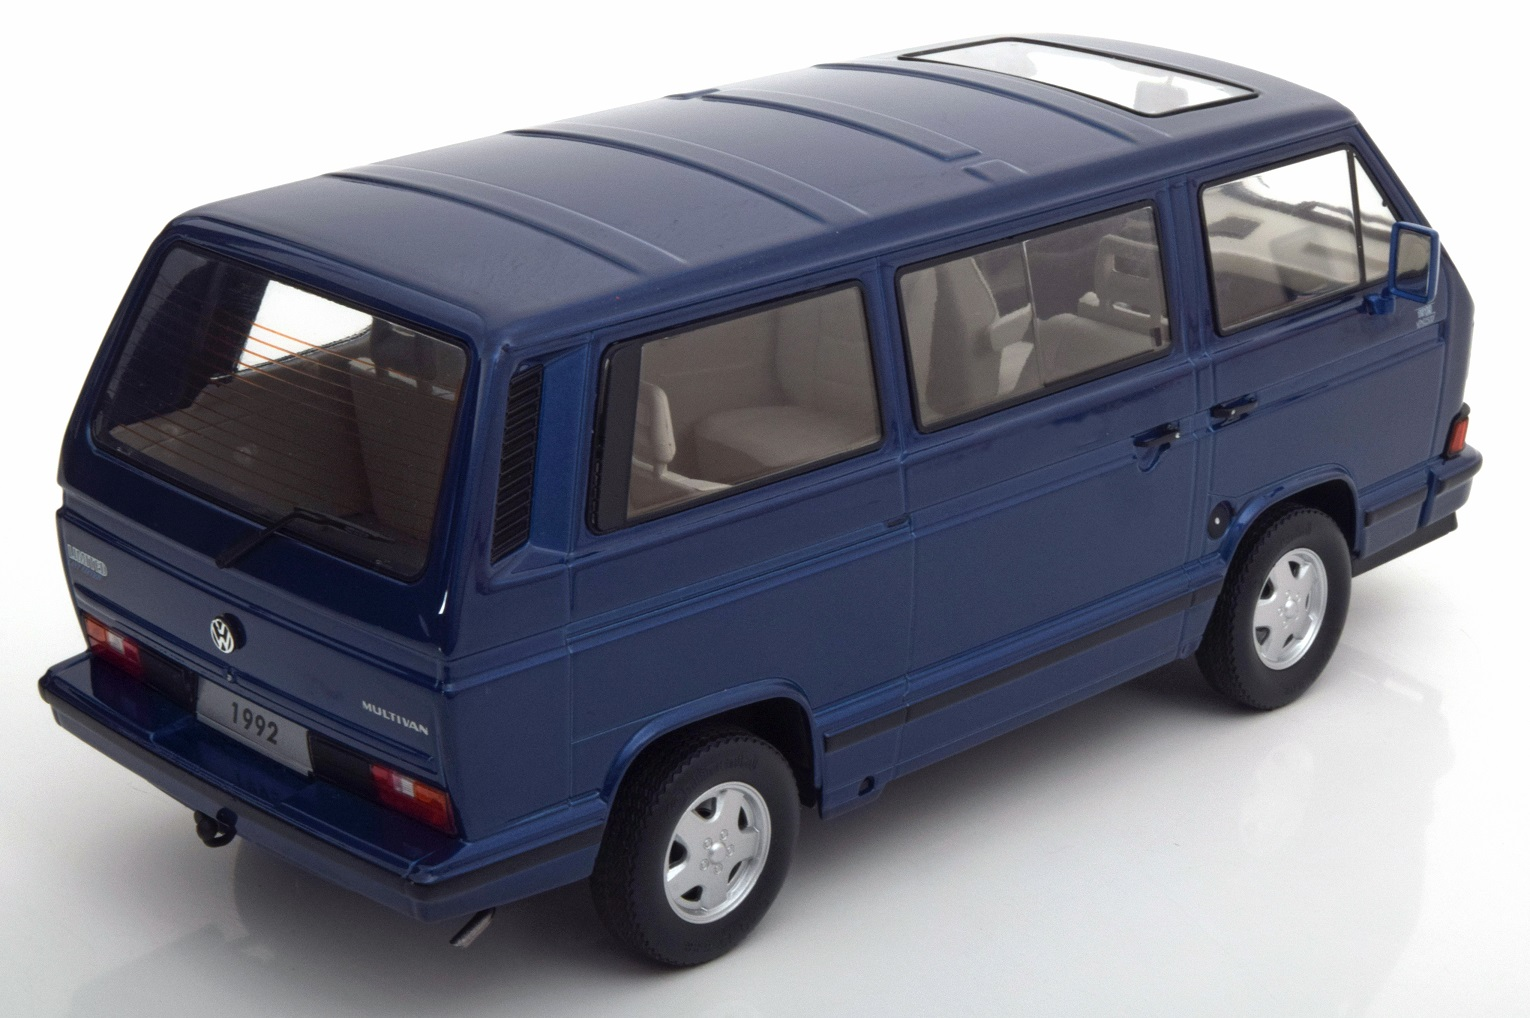 modellauto vw t3 limited last edition 1992 blau kk scale. Black Bedroom Furniture Sets. Home Design Ideas